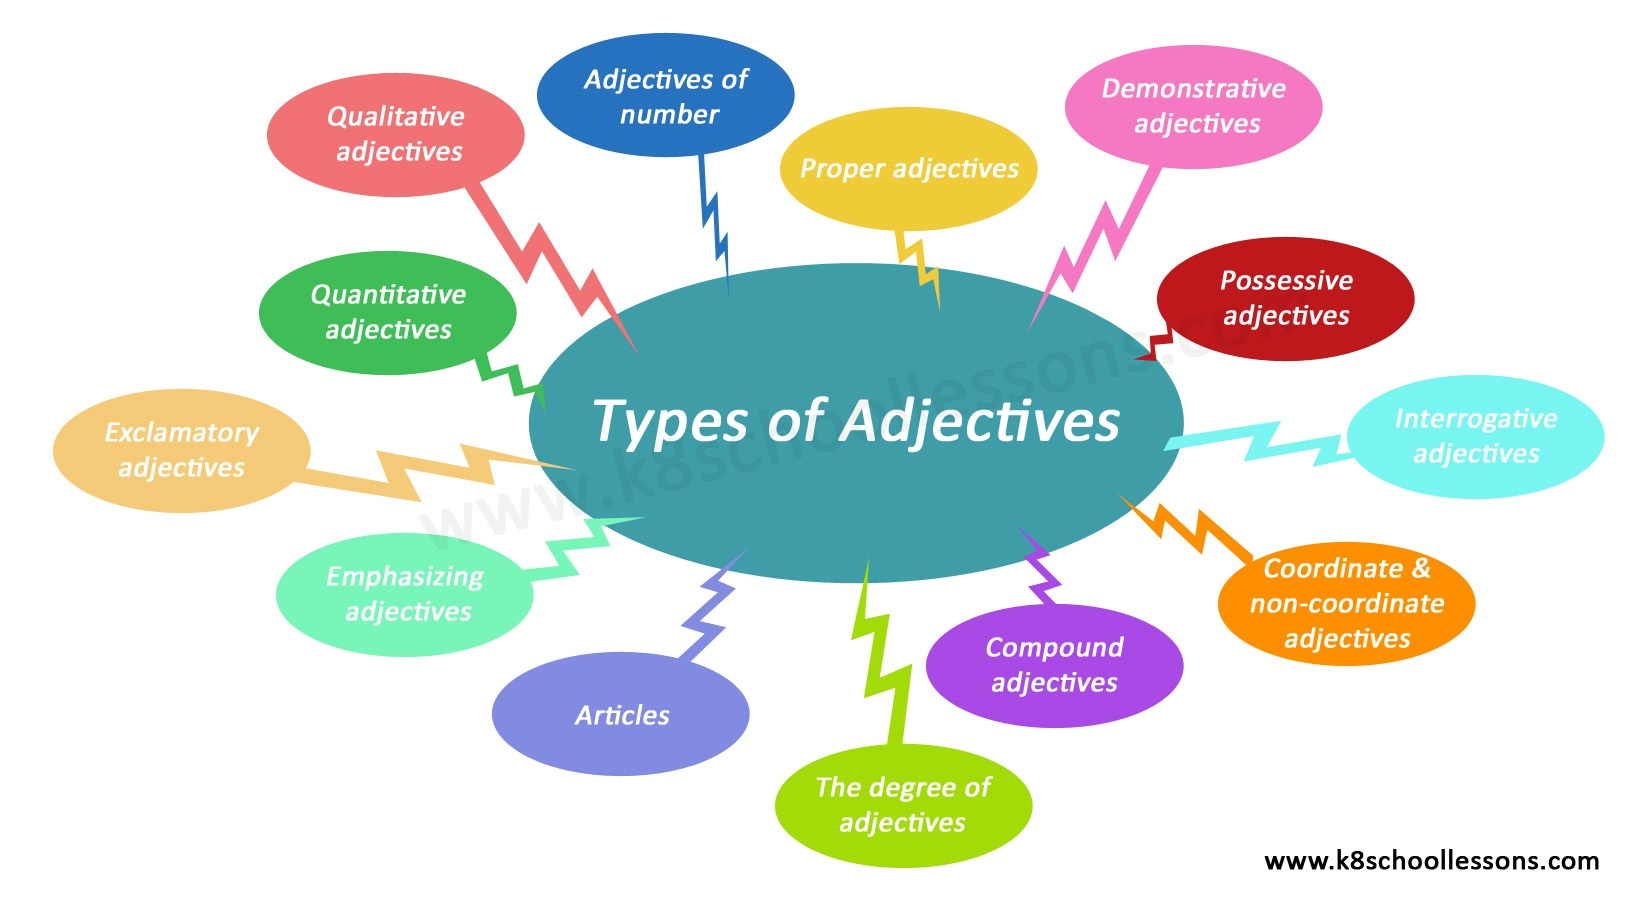 Types of adjectives diagram